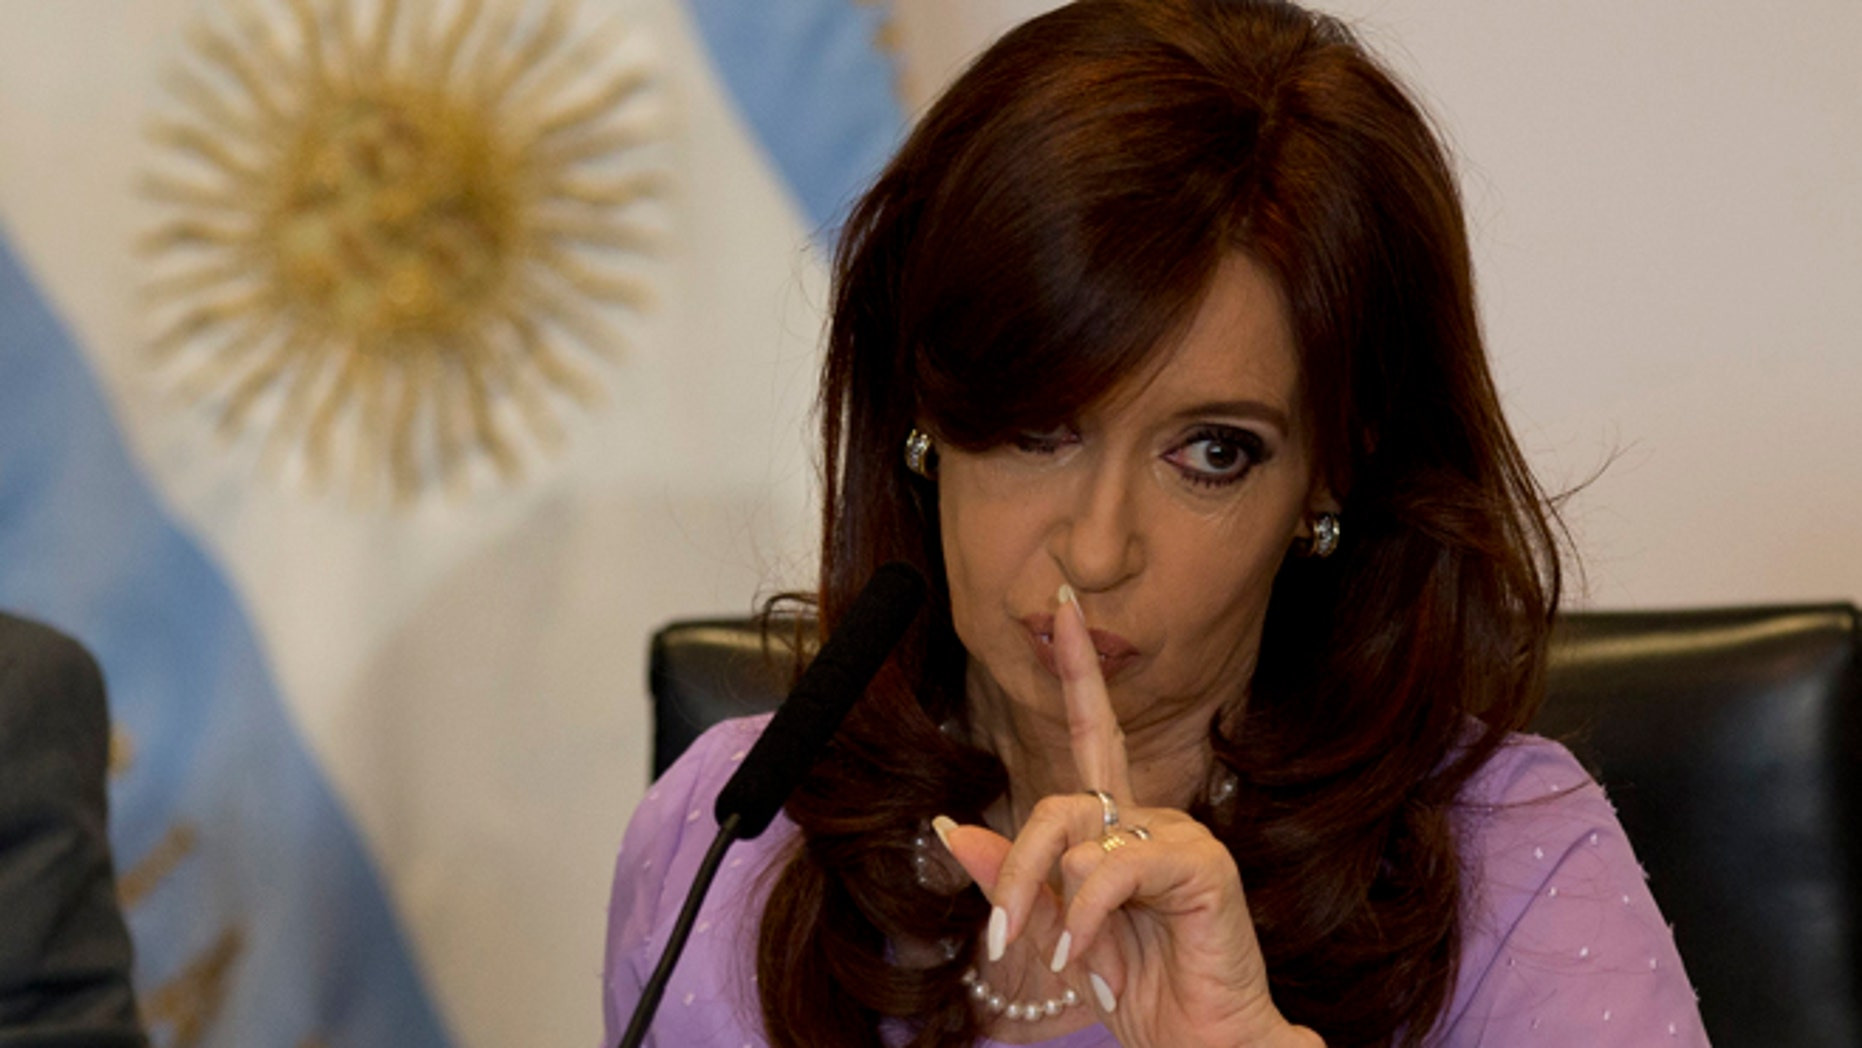 Then-President Cristina Fernandez of Argentina signals to supporters during an event in Buenos Aires, Feb. 11, 2015.